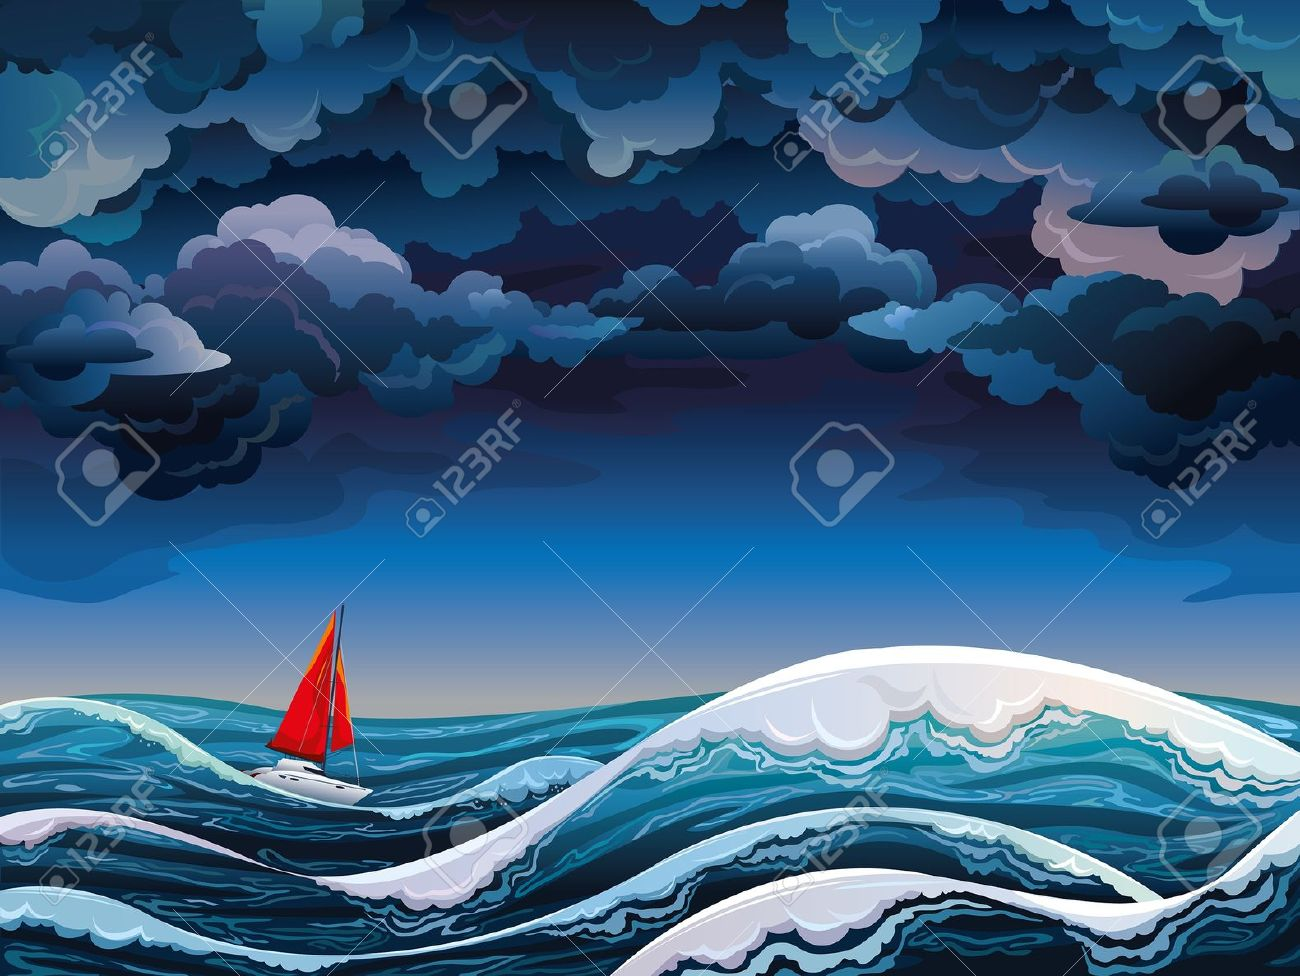 774 Stormy Sea Cliparts, Stock Vector And Royalty Free Stormy Sea.